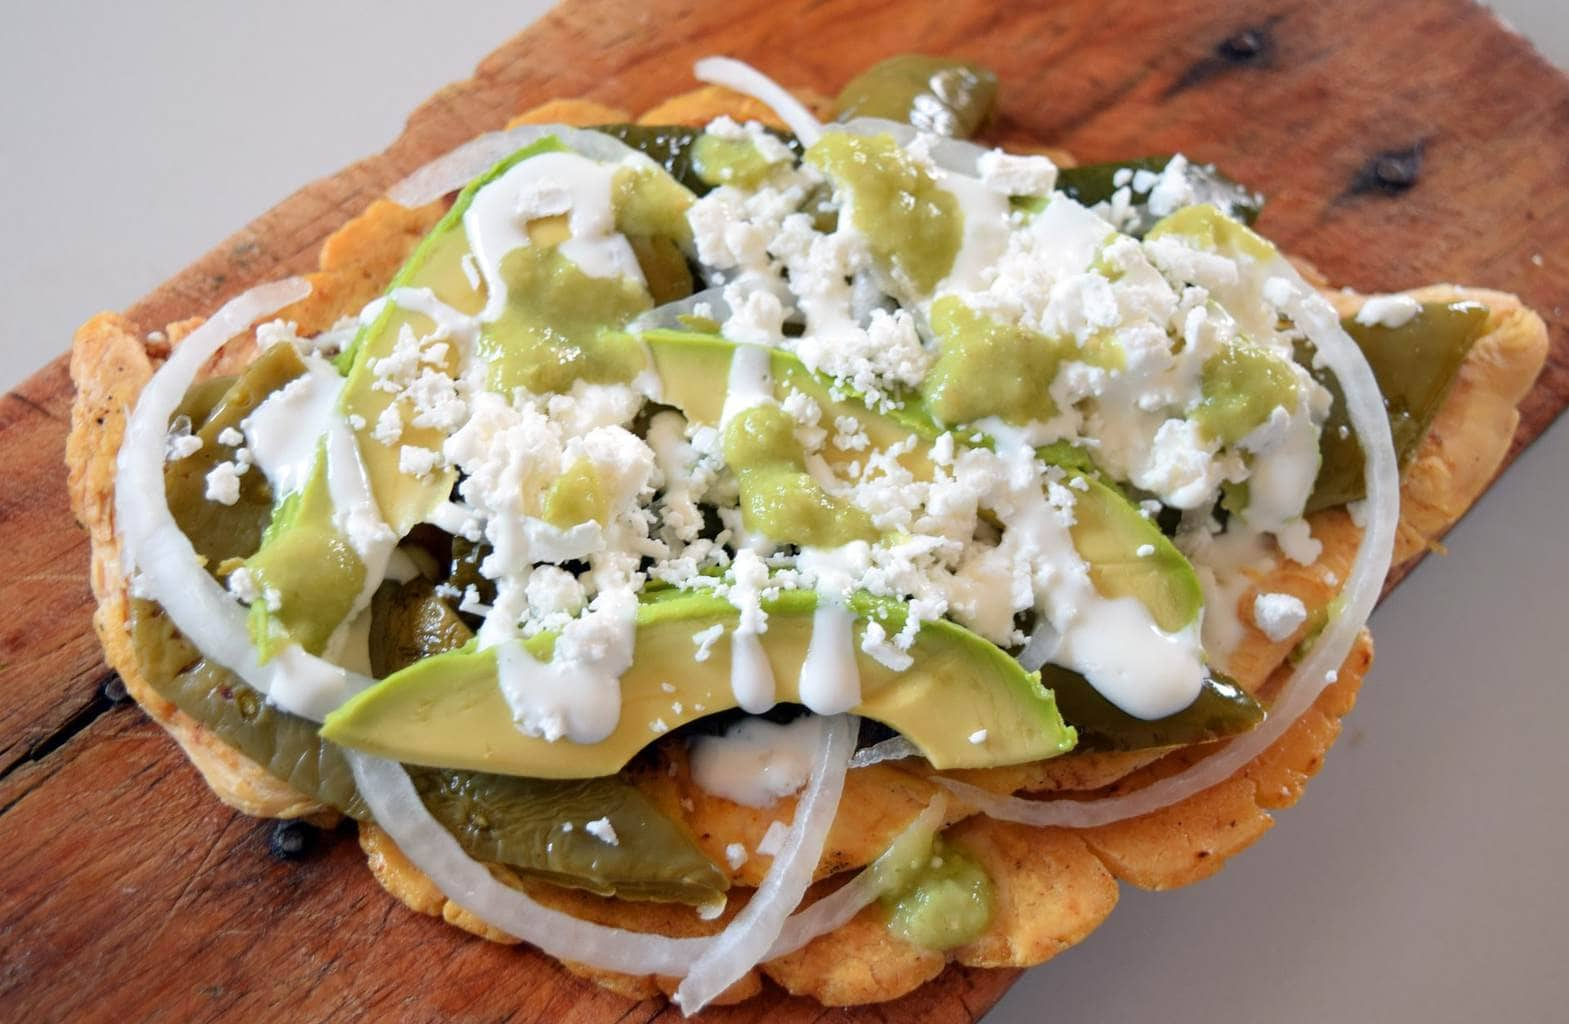 Huarache is a Mexican dish made with coarser toasted corn masa dough